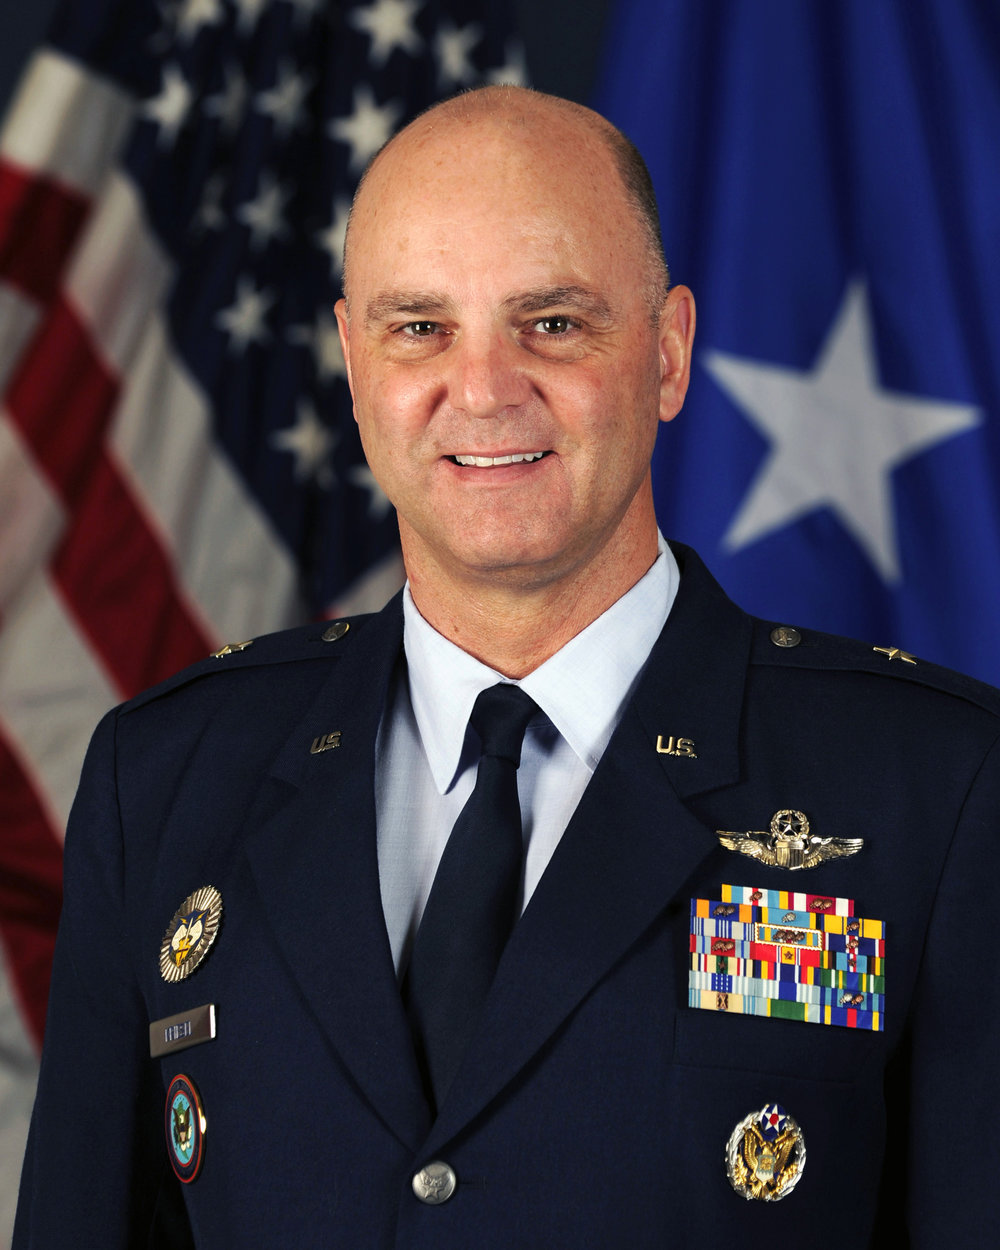 James R. Kriesel is scheduled to be promoted to the rank of brigadier general and will assume command of the Oregon National Guard's Air Component in a ceremony January 6, 2018 (Submitted Photo)